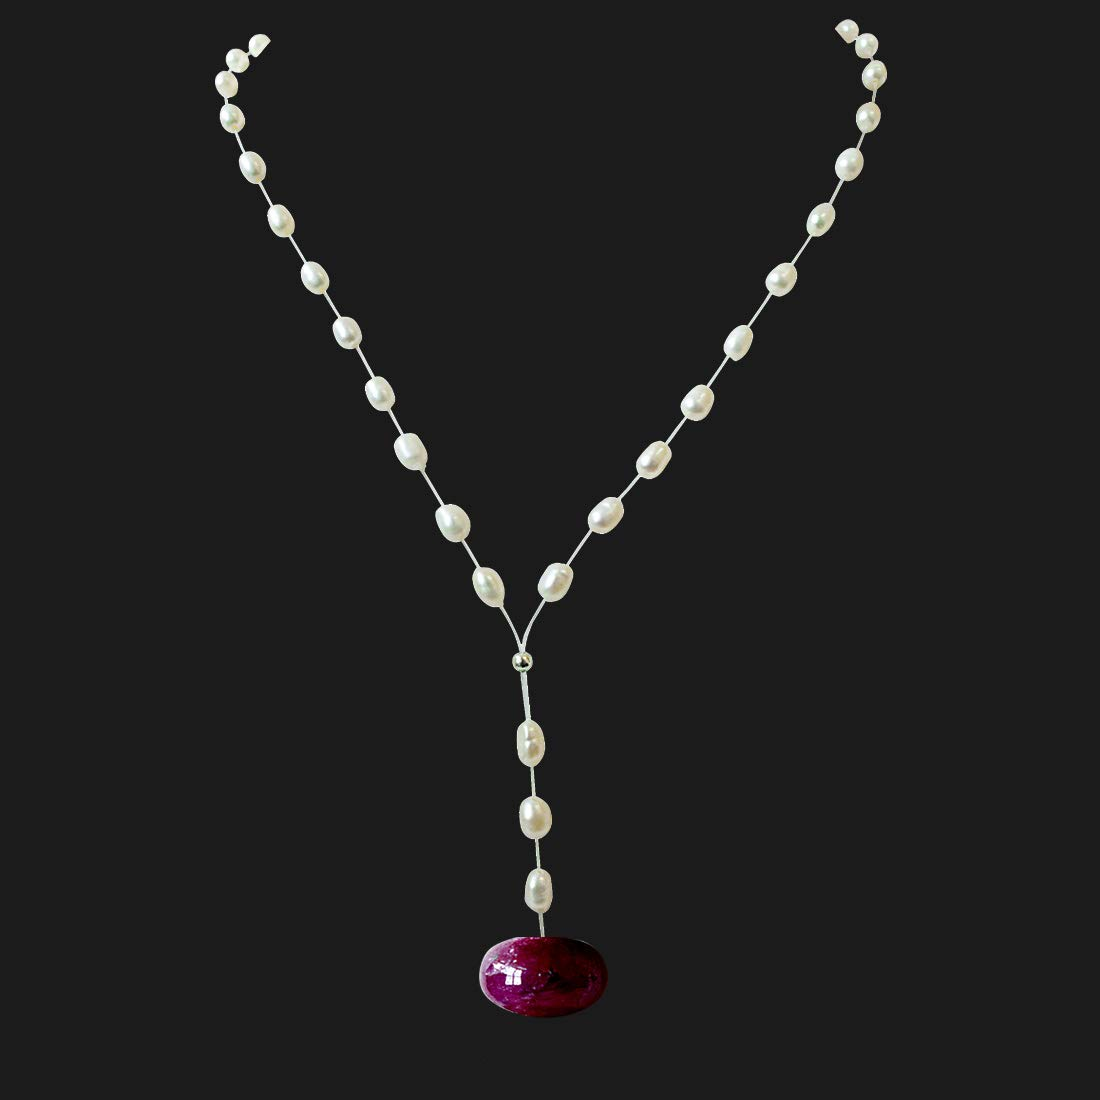 6.82cts Real Natural Round Red Ruby and Freshwater Pearl Wire Style Necklace for Women (SN946)